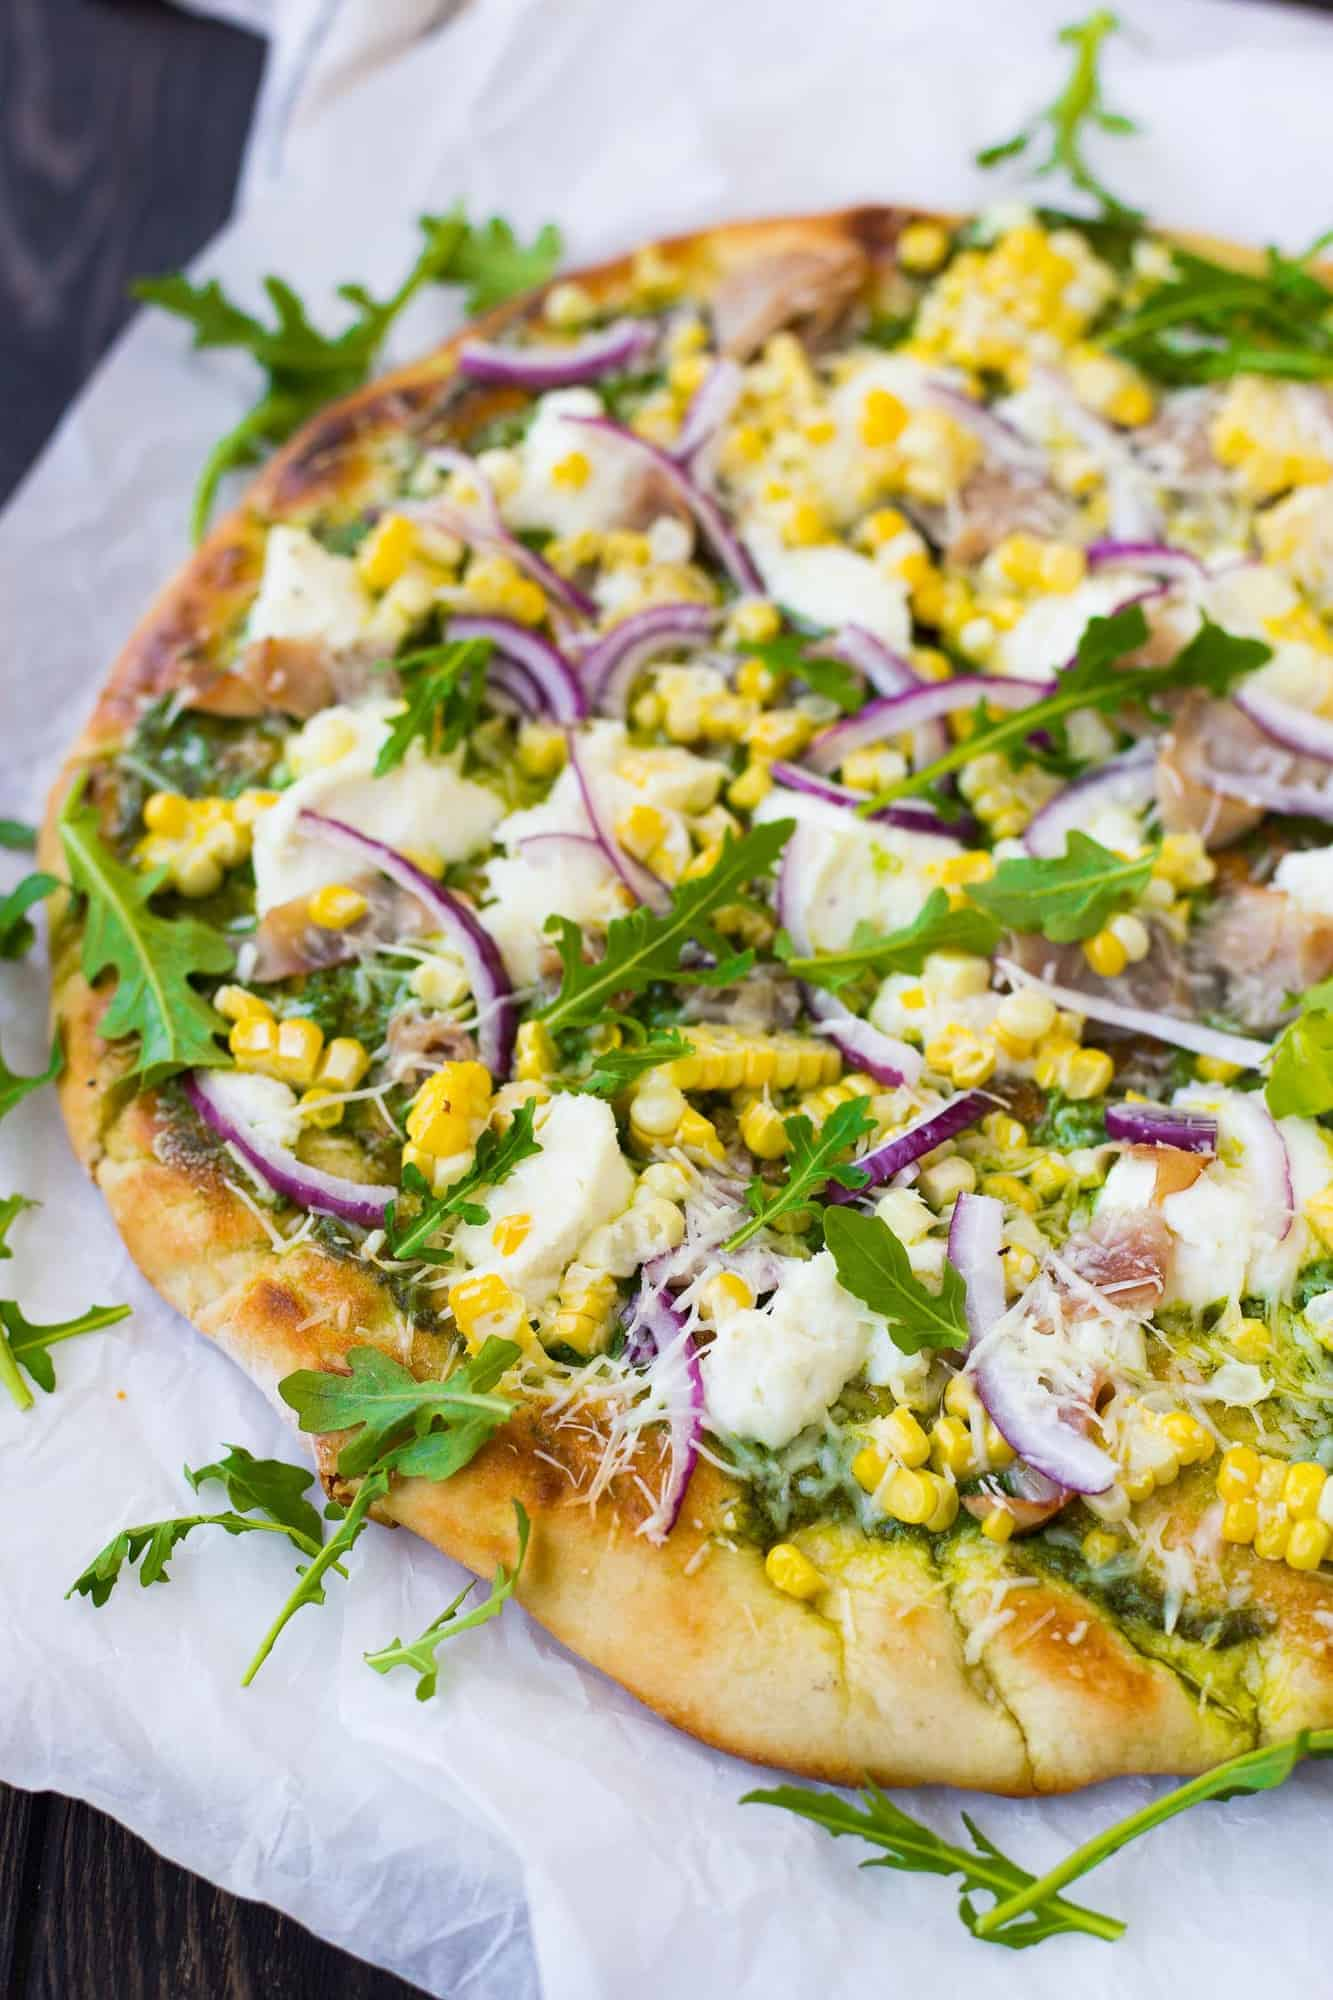 Grilled pizza on a piece of parchment, topped with ricotta cheese, arugula, and more.